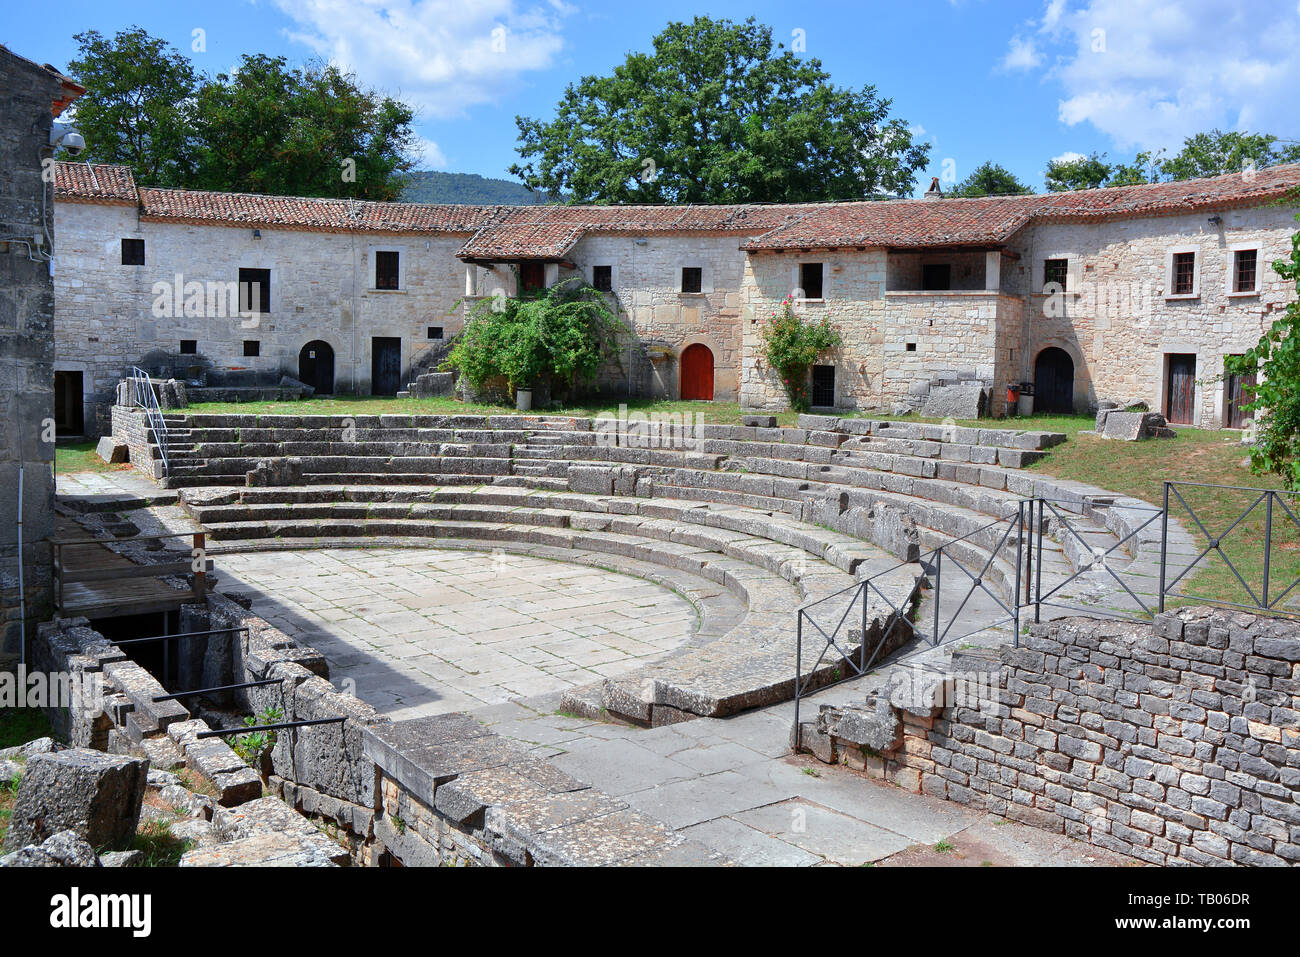 Sepino, Molise, Italy. Altilia the archaeological site located in Sepino, in the province of Campobasso. The name Altilia indicates the Roman city. - Stock Image